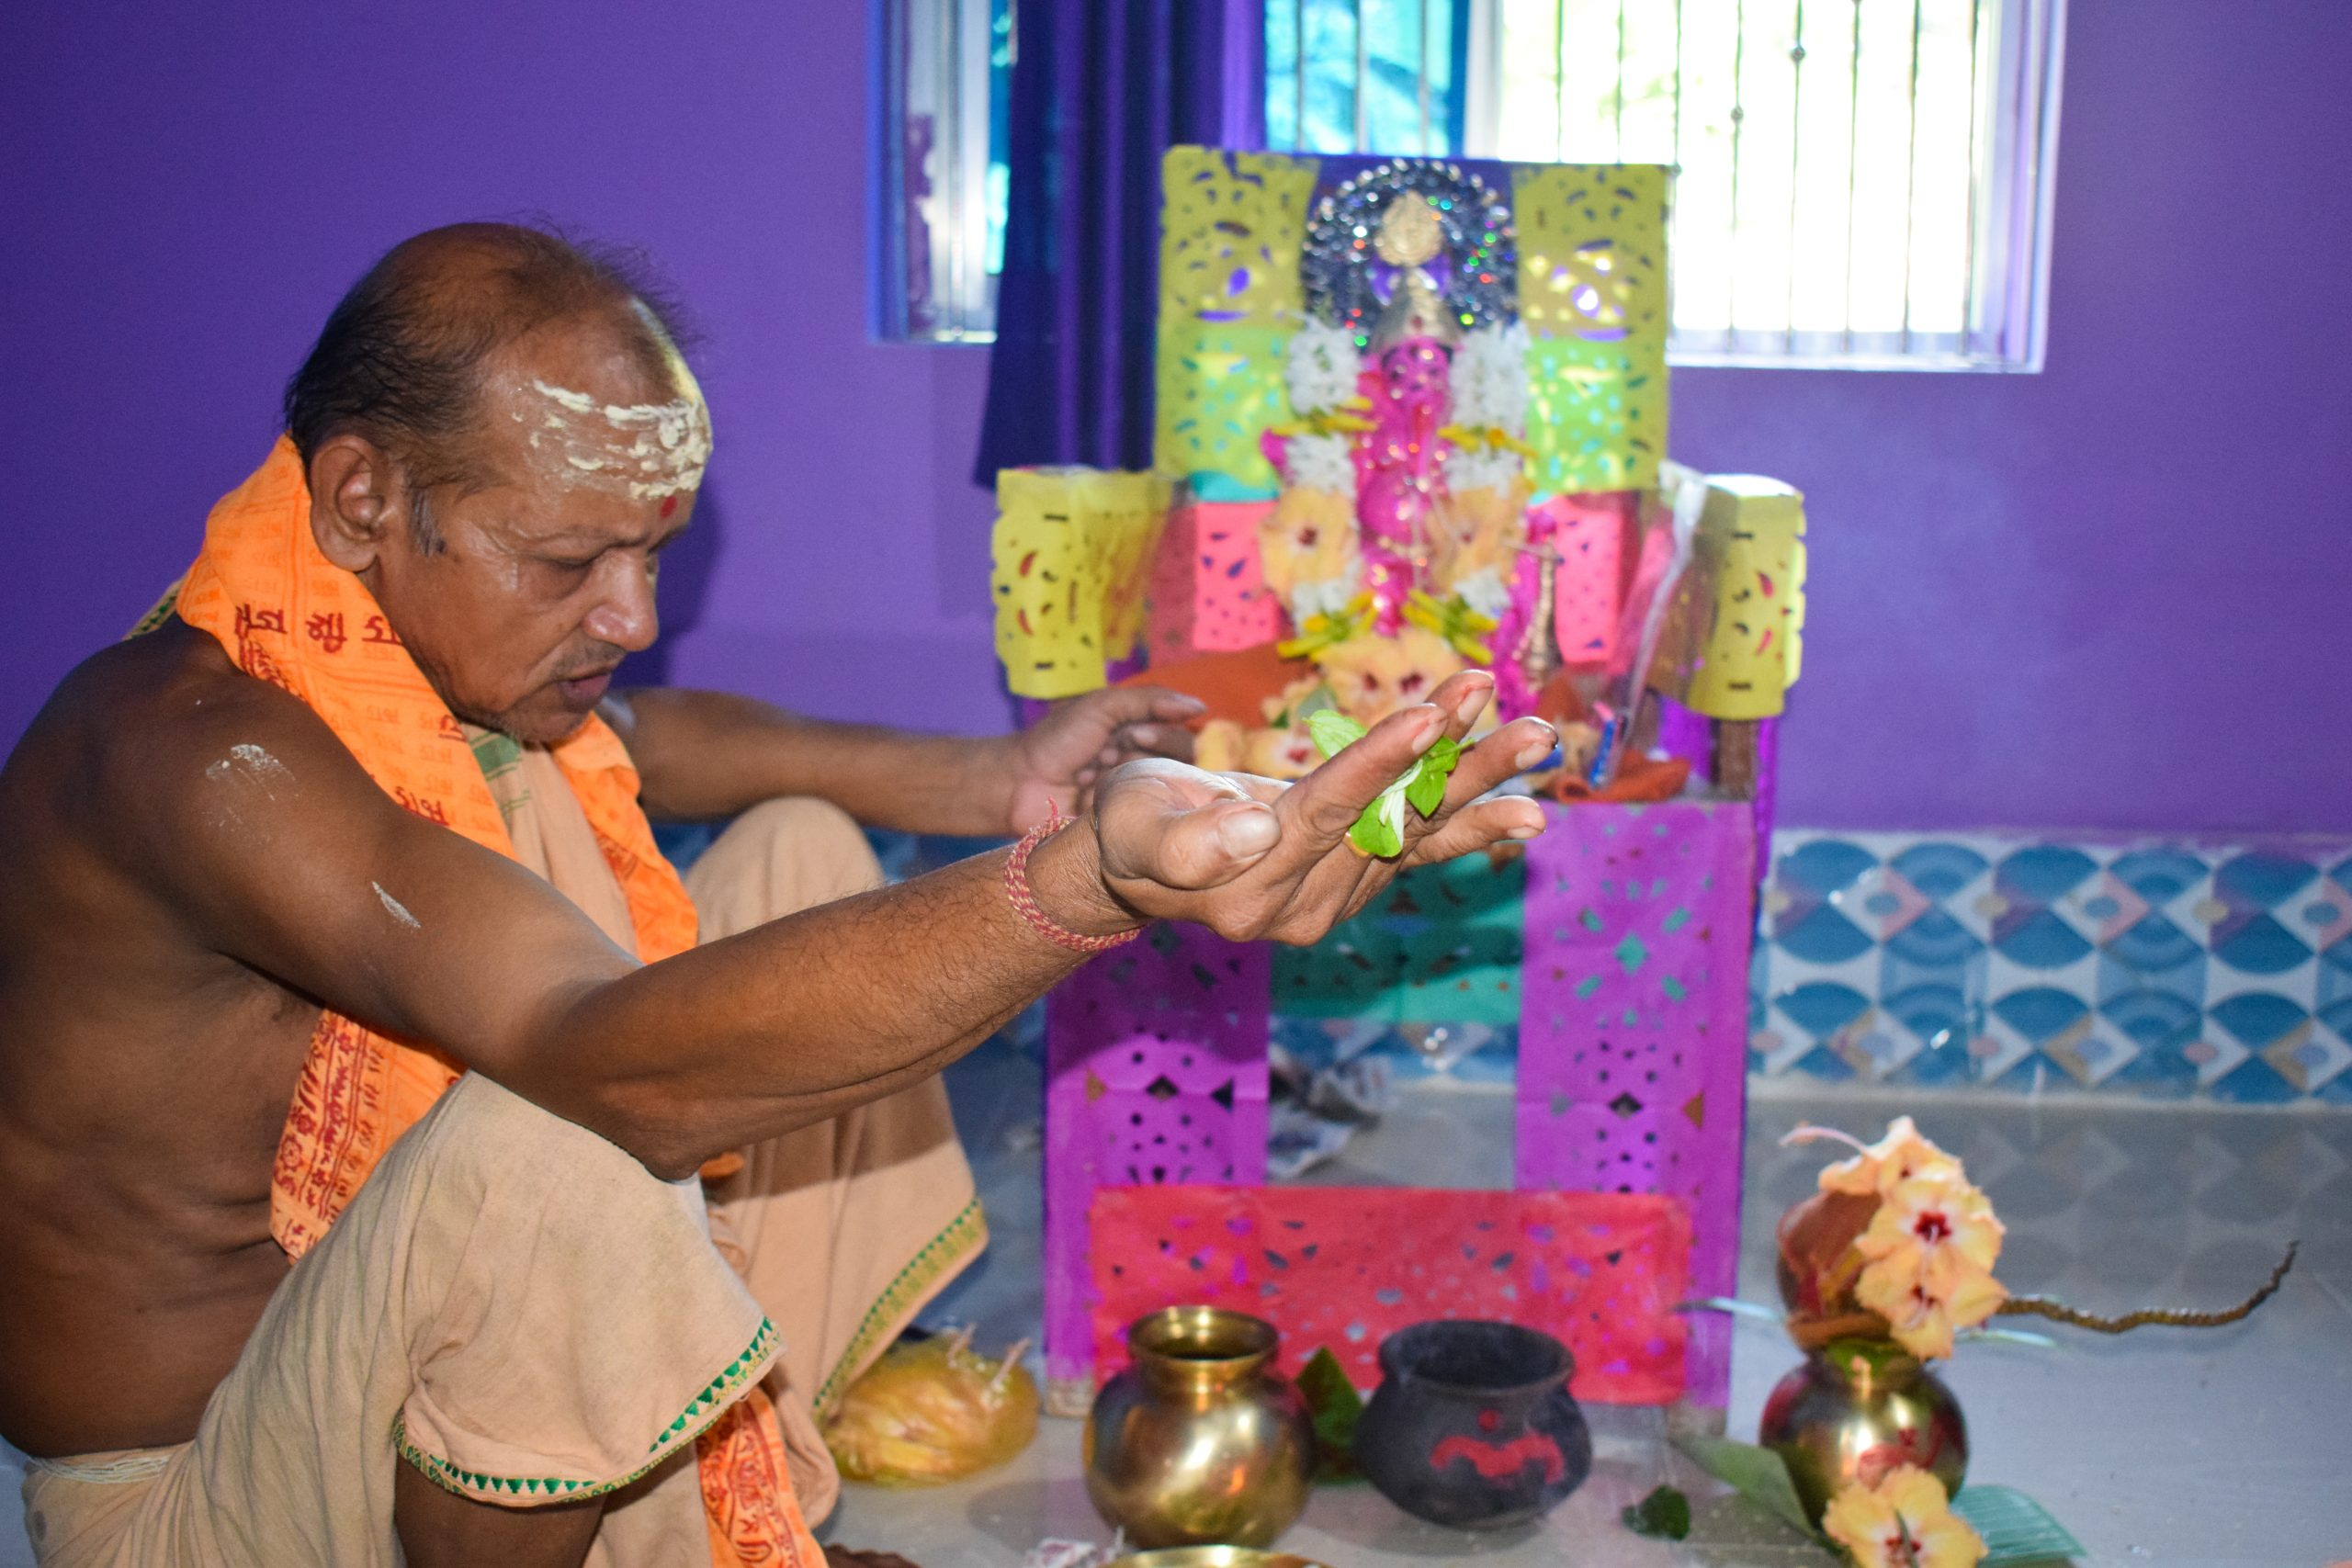 A priest worshiping in a temple